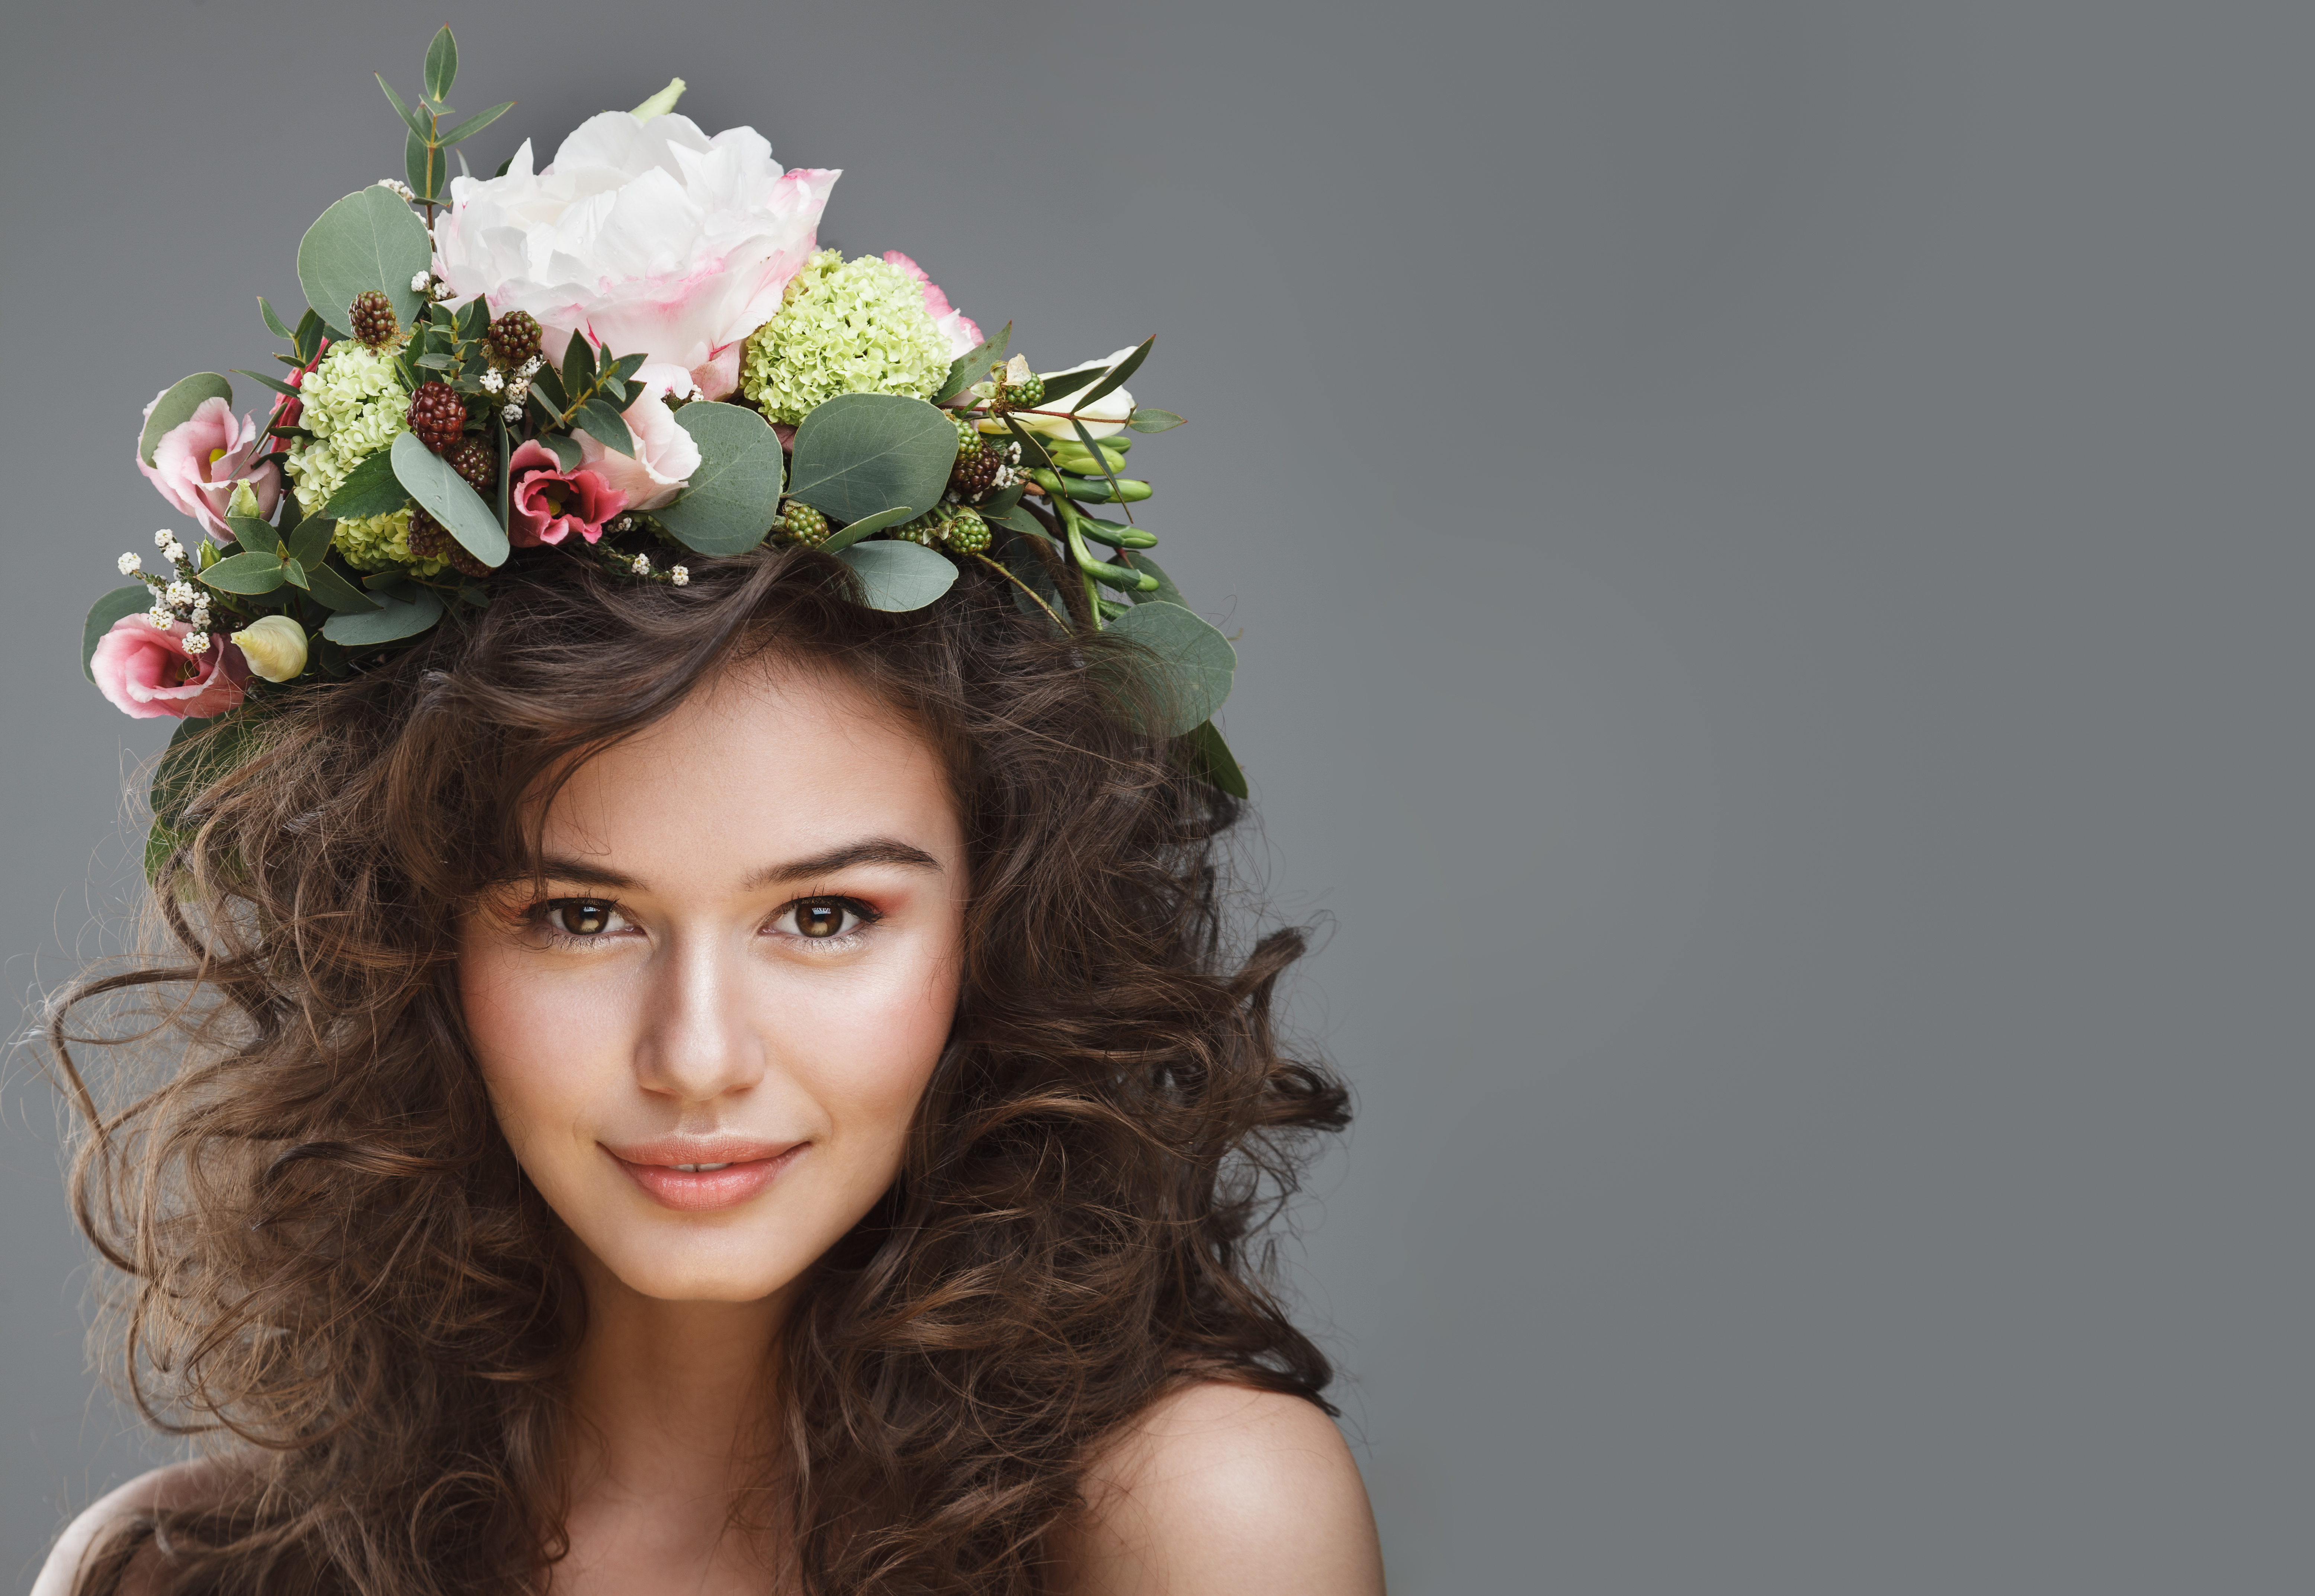 woman with curly brown hair and a flower decoration on top.jpeg